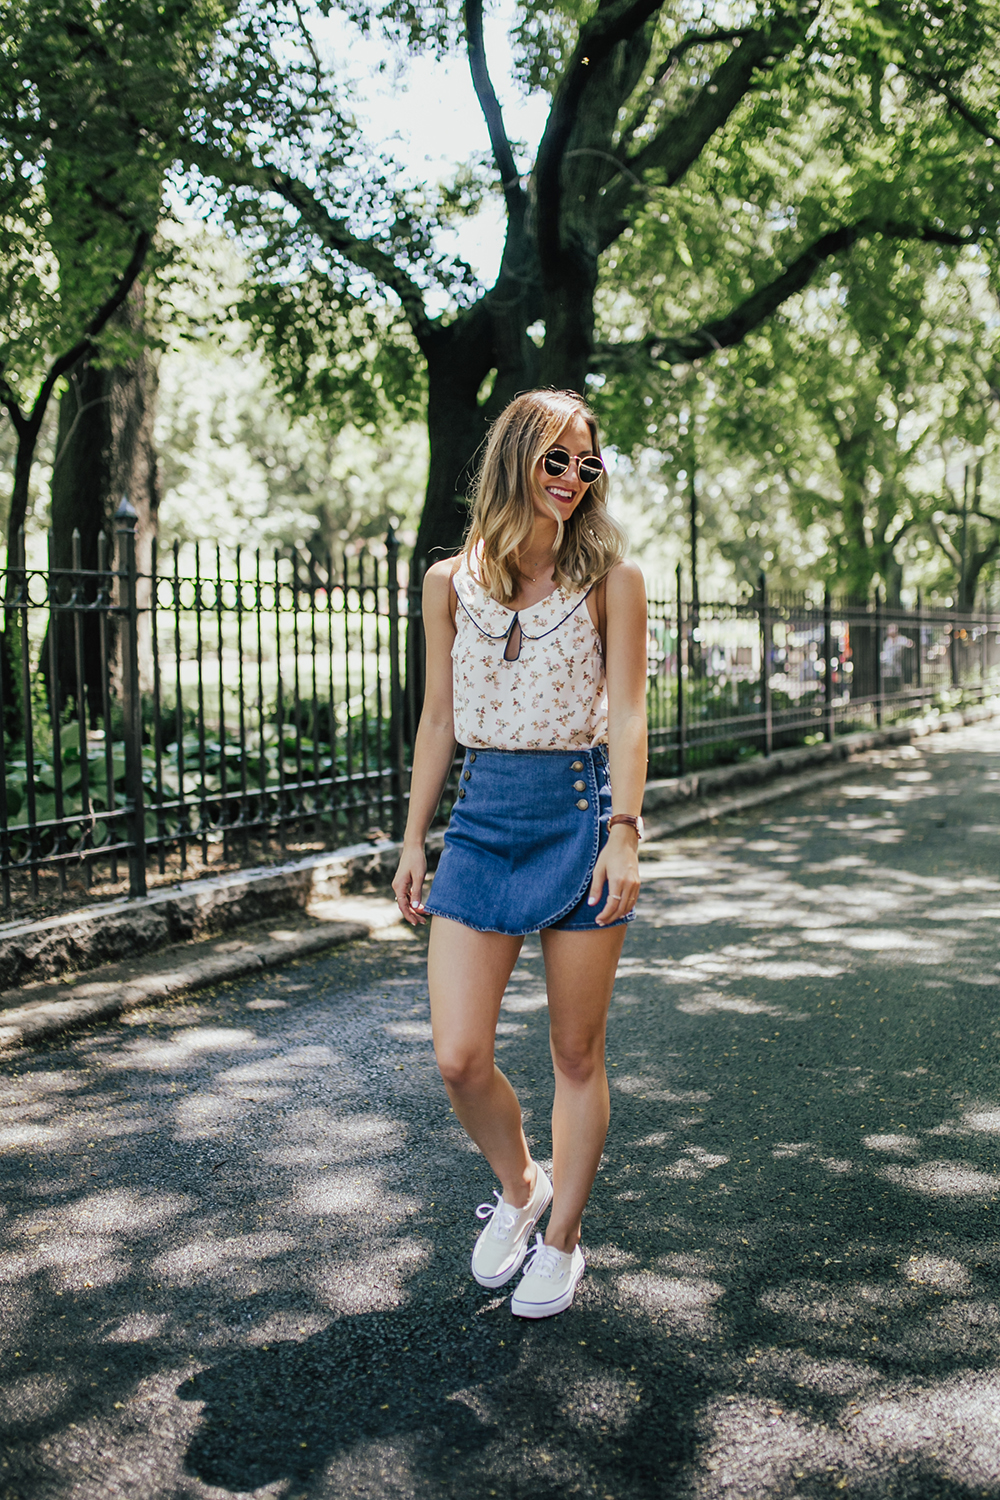 livvyland-blog-olivia-watson-new-york-city-cobble-hill-brooklyn-modcloth-skort-peter-pan-collar-top-vans-classic-sneakers-summer-outfit-6